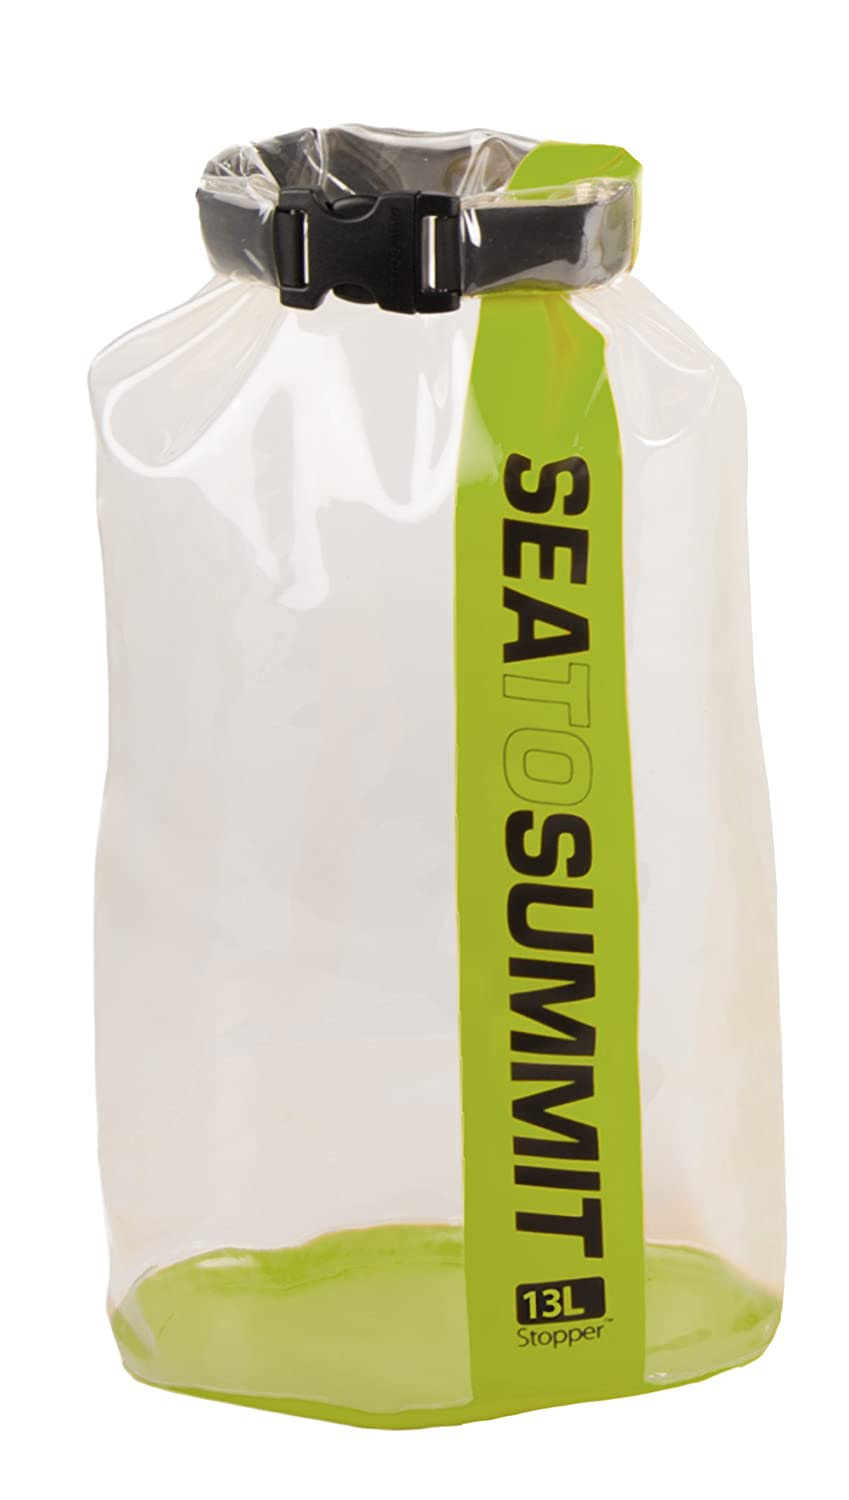 Sea to Summit Clear Stopper Dry Bag Sacca impermeabile trasparente